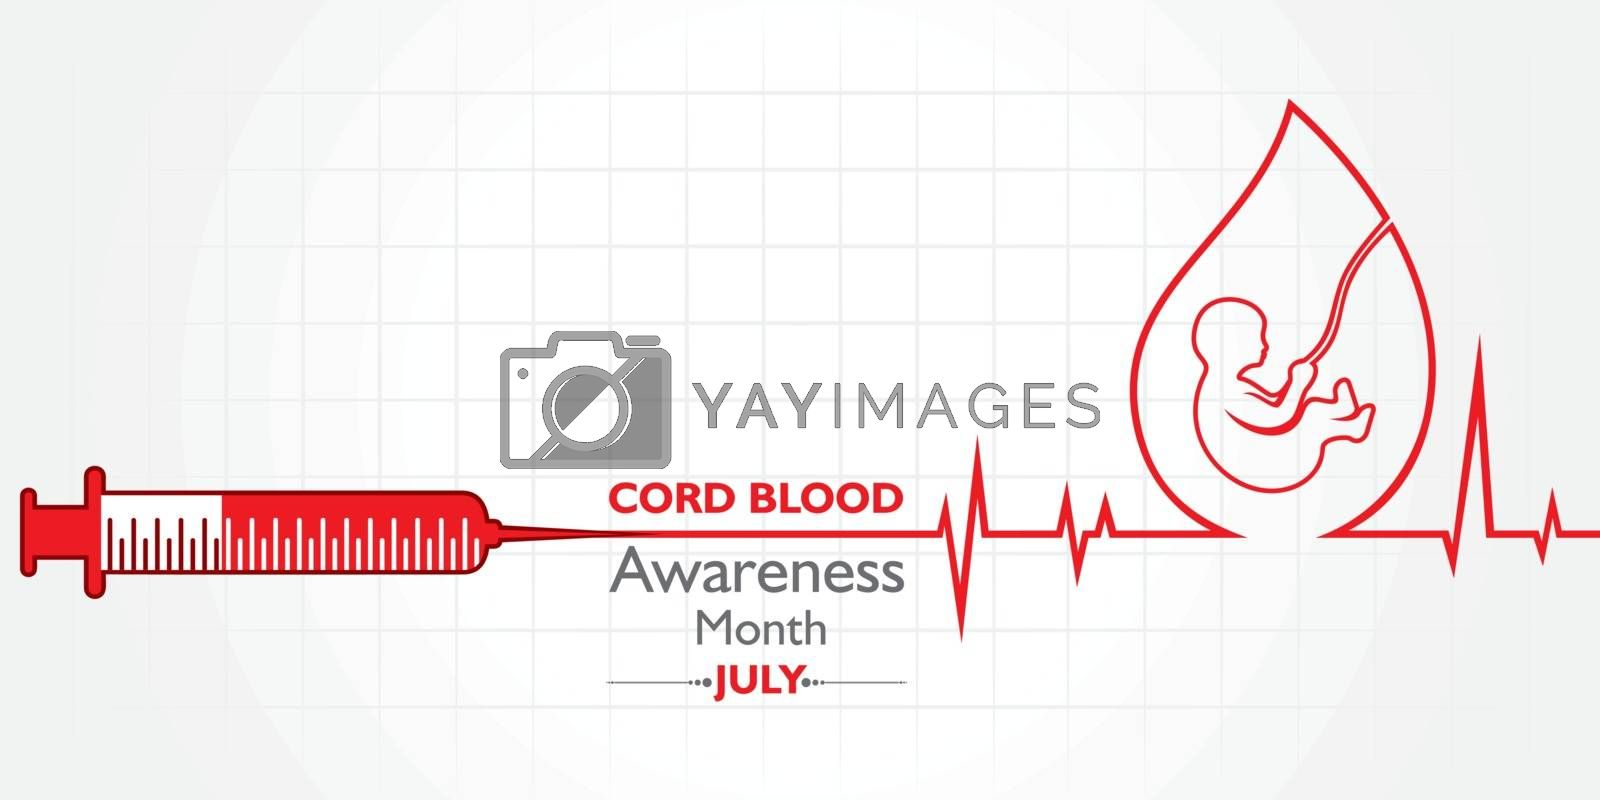 Cord Blood awareness month observed in July Every Year by graphicsdunia4you